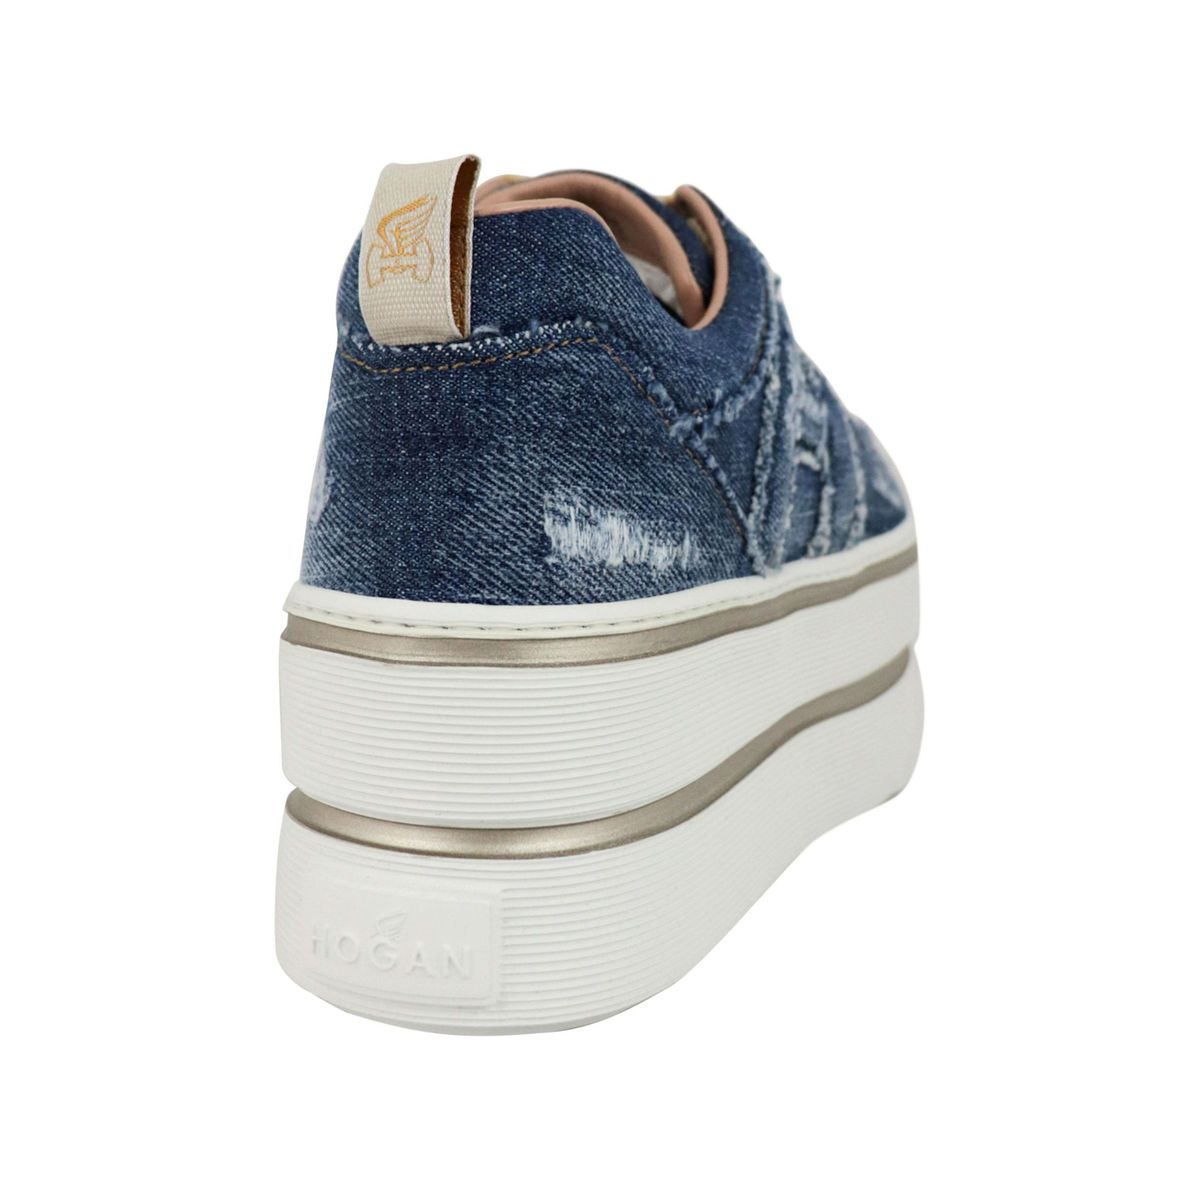 Maxi sneakers in denim canvas Blue jeans Hogan